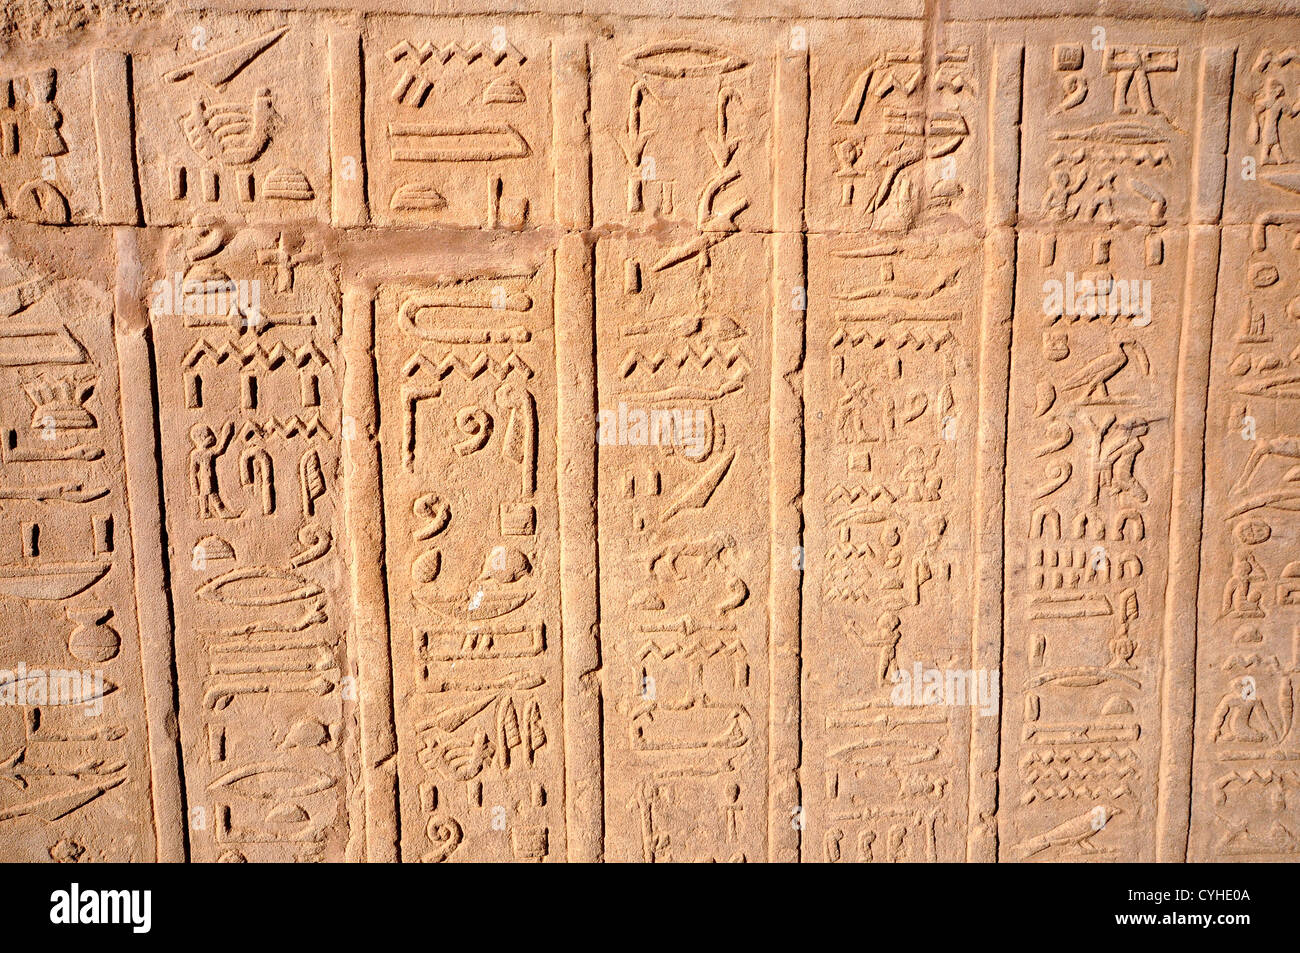 Hierogliphic scripts engraved on a wall - Stock Image